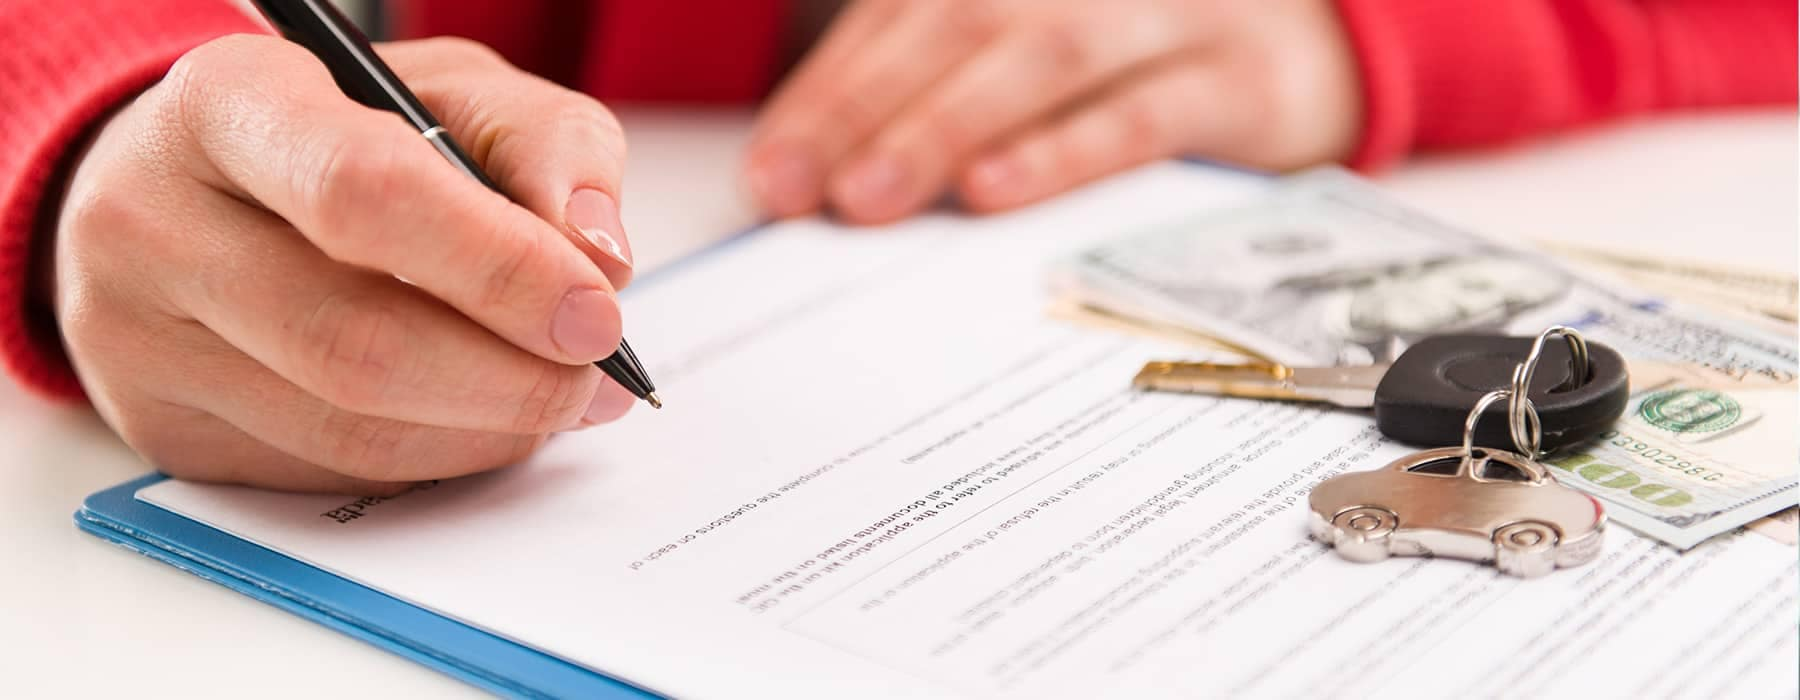 A person looking over financial documents before signing them